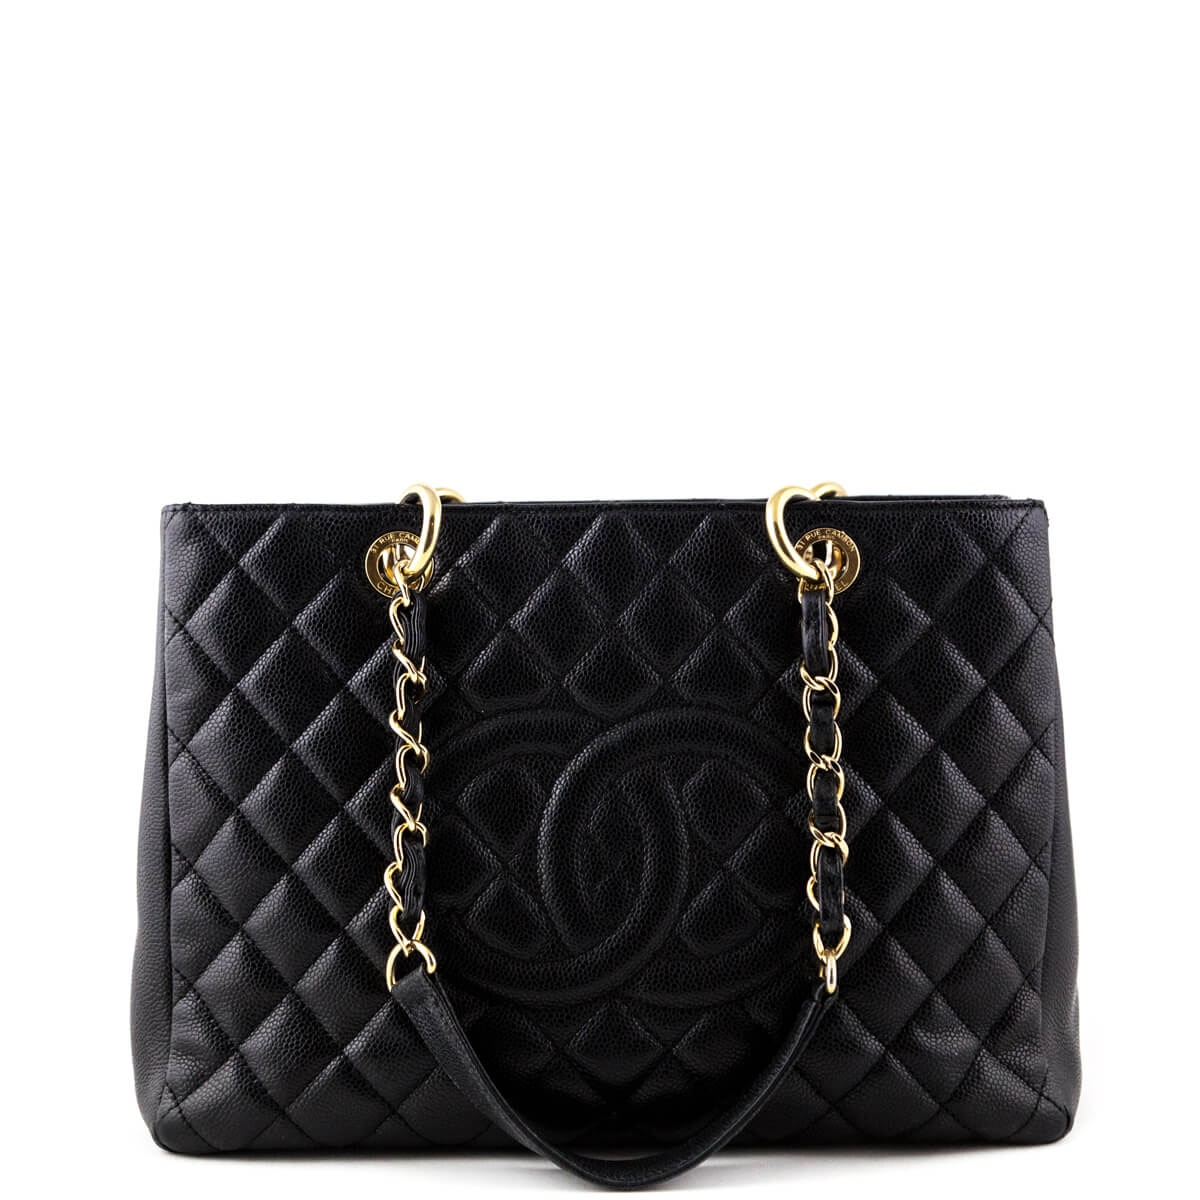 35bccf5d0259 Chanel Black Caviar Grand Shopping Tote GST GHW - LOVE that BAG - Preowned  Authentic Designer ...